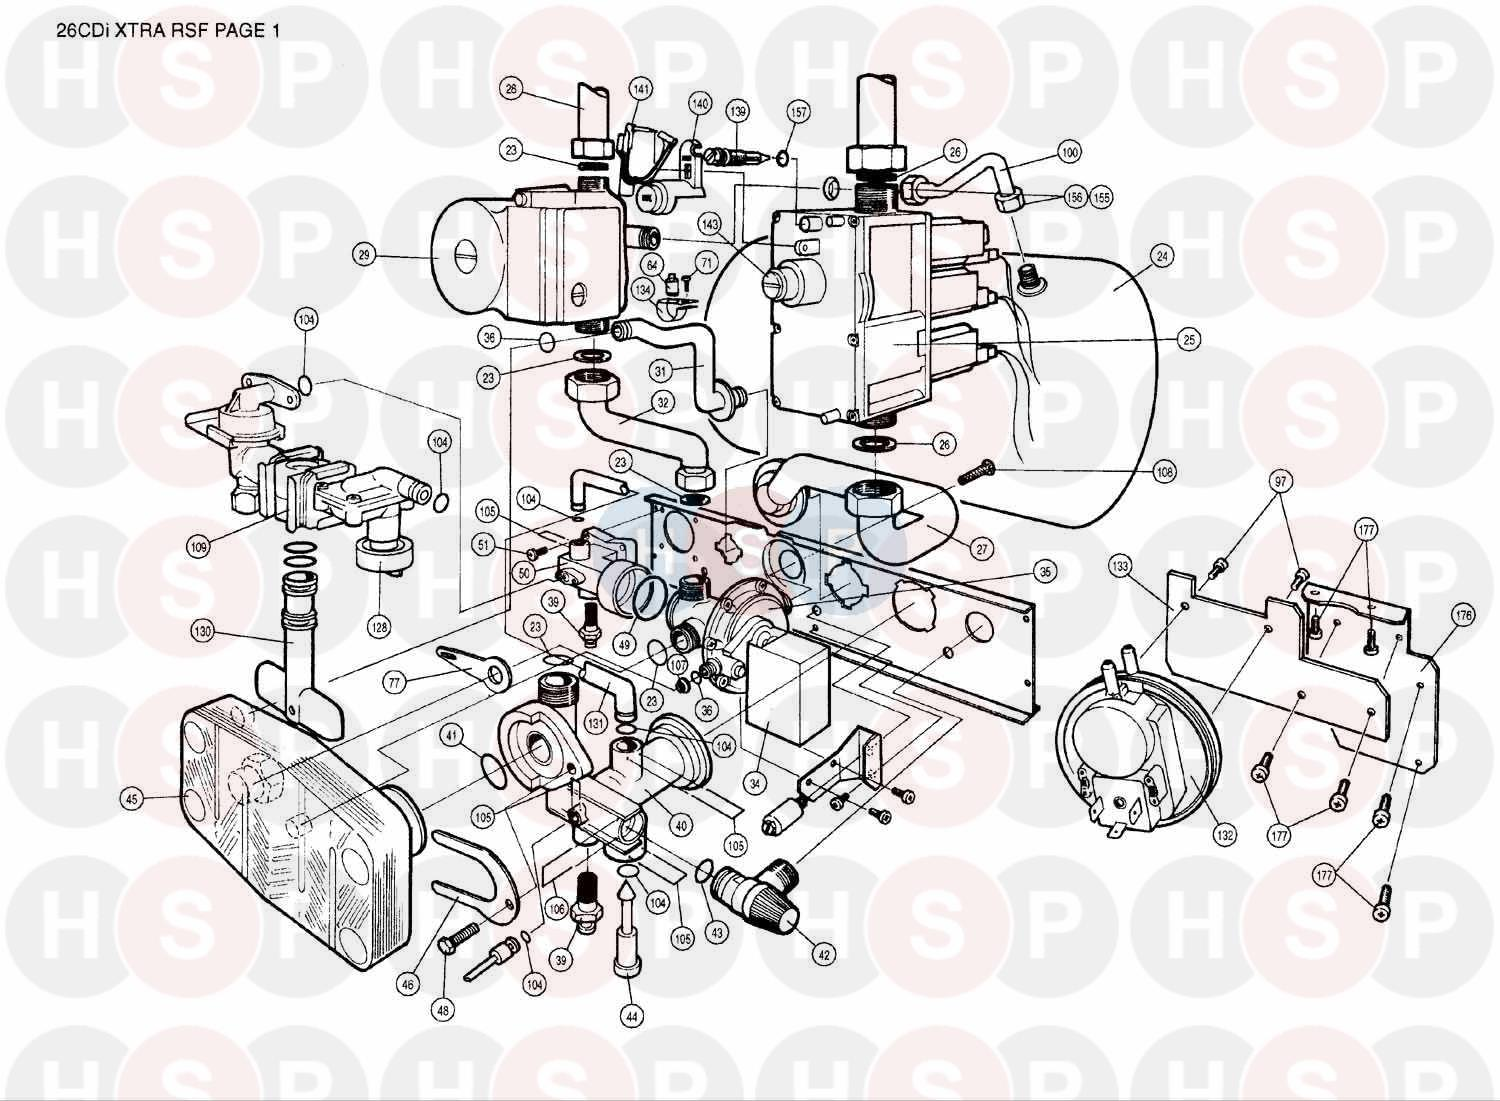 Worcester 26 CDI XTRA (ASSEMBLY 1) Diagram   Heating Spare Parts